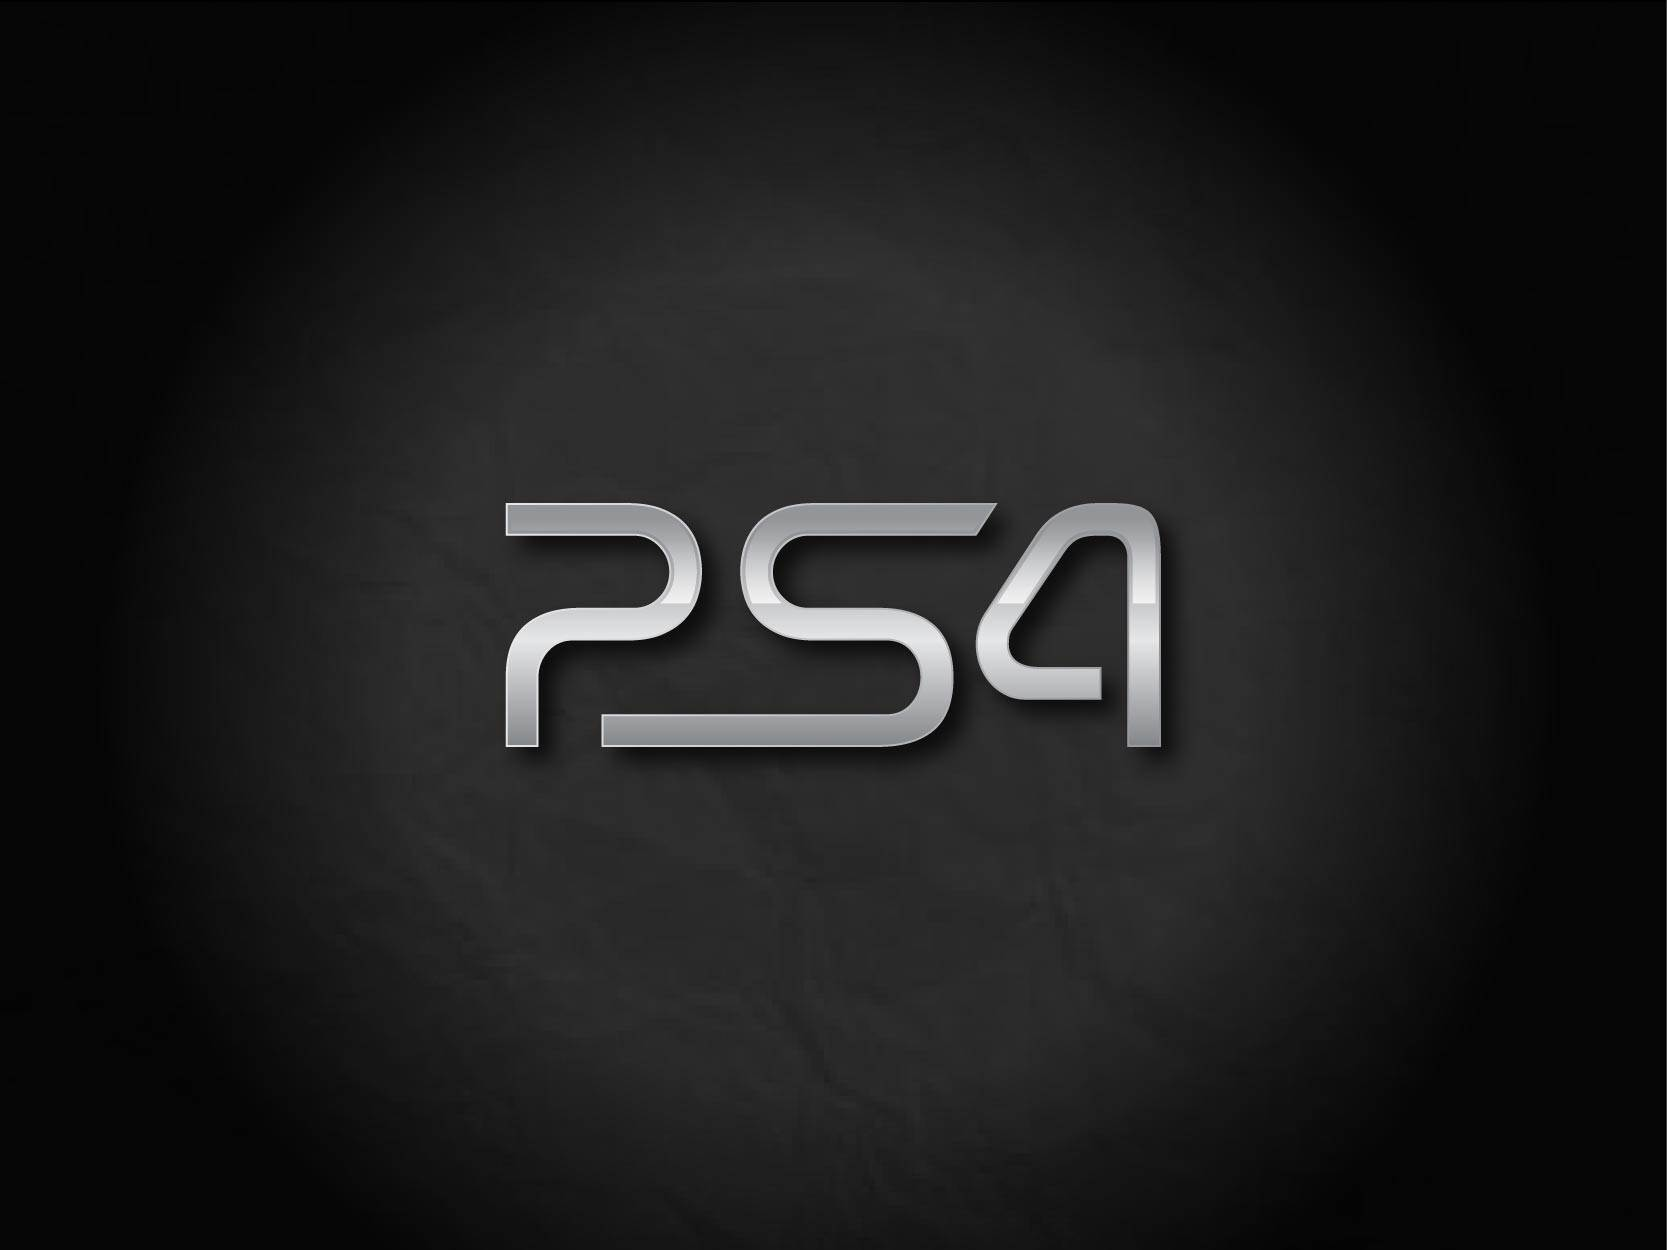 10 Amazing PS4 Logo Concepts That Sony Could Draw ...